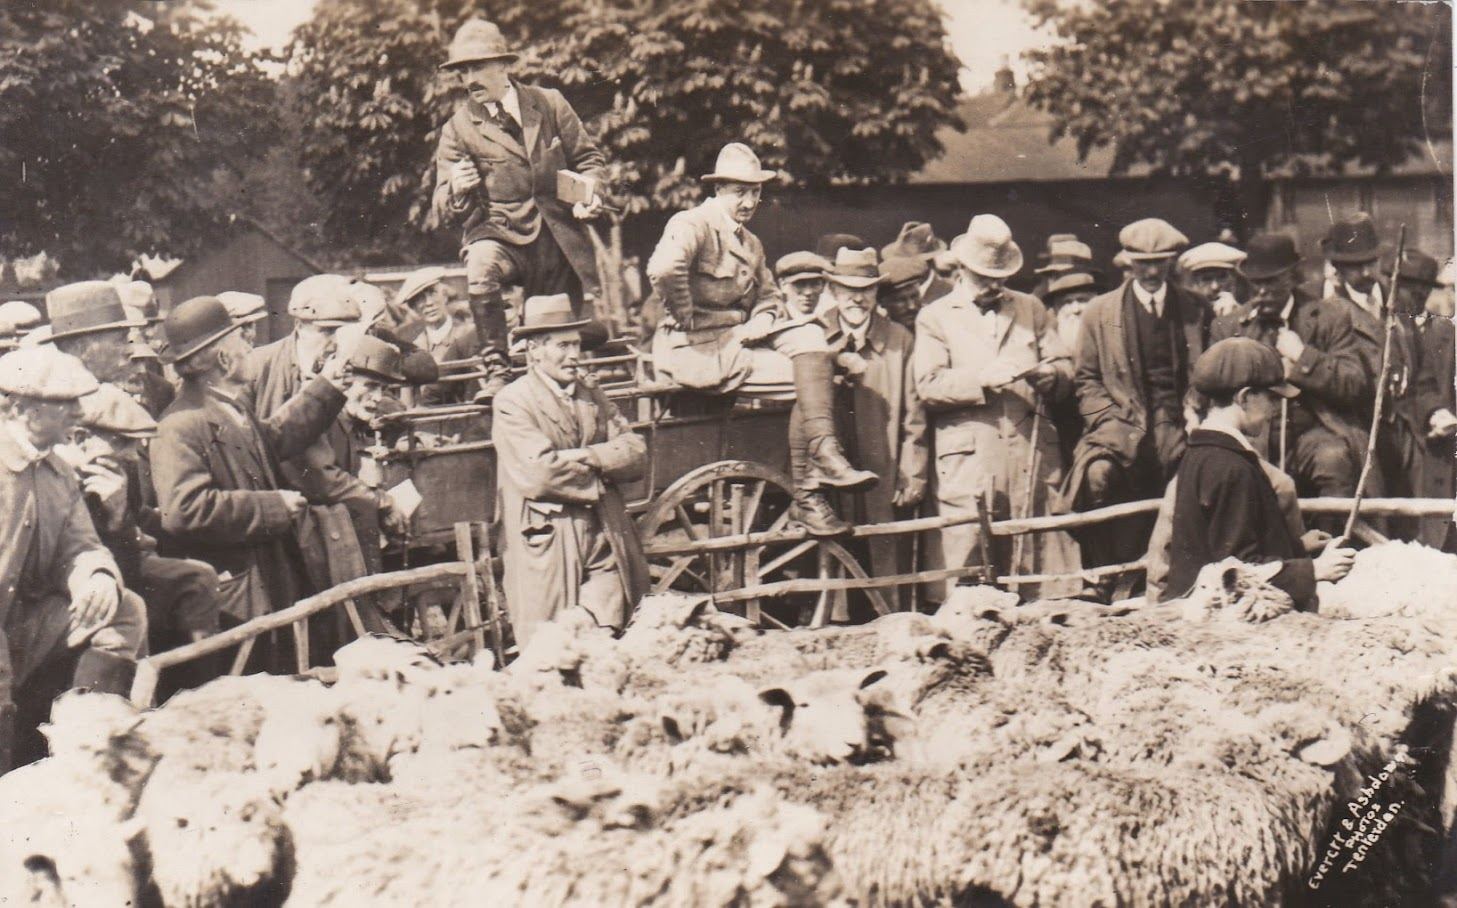 Tenterden Archive photos - Tenterden Market - Cattle and Sheep